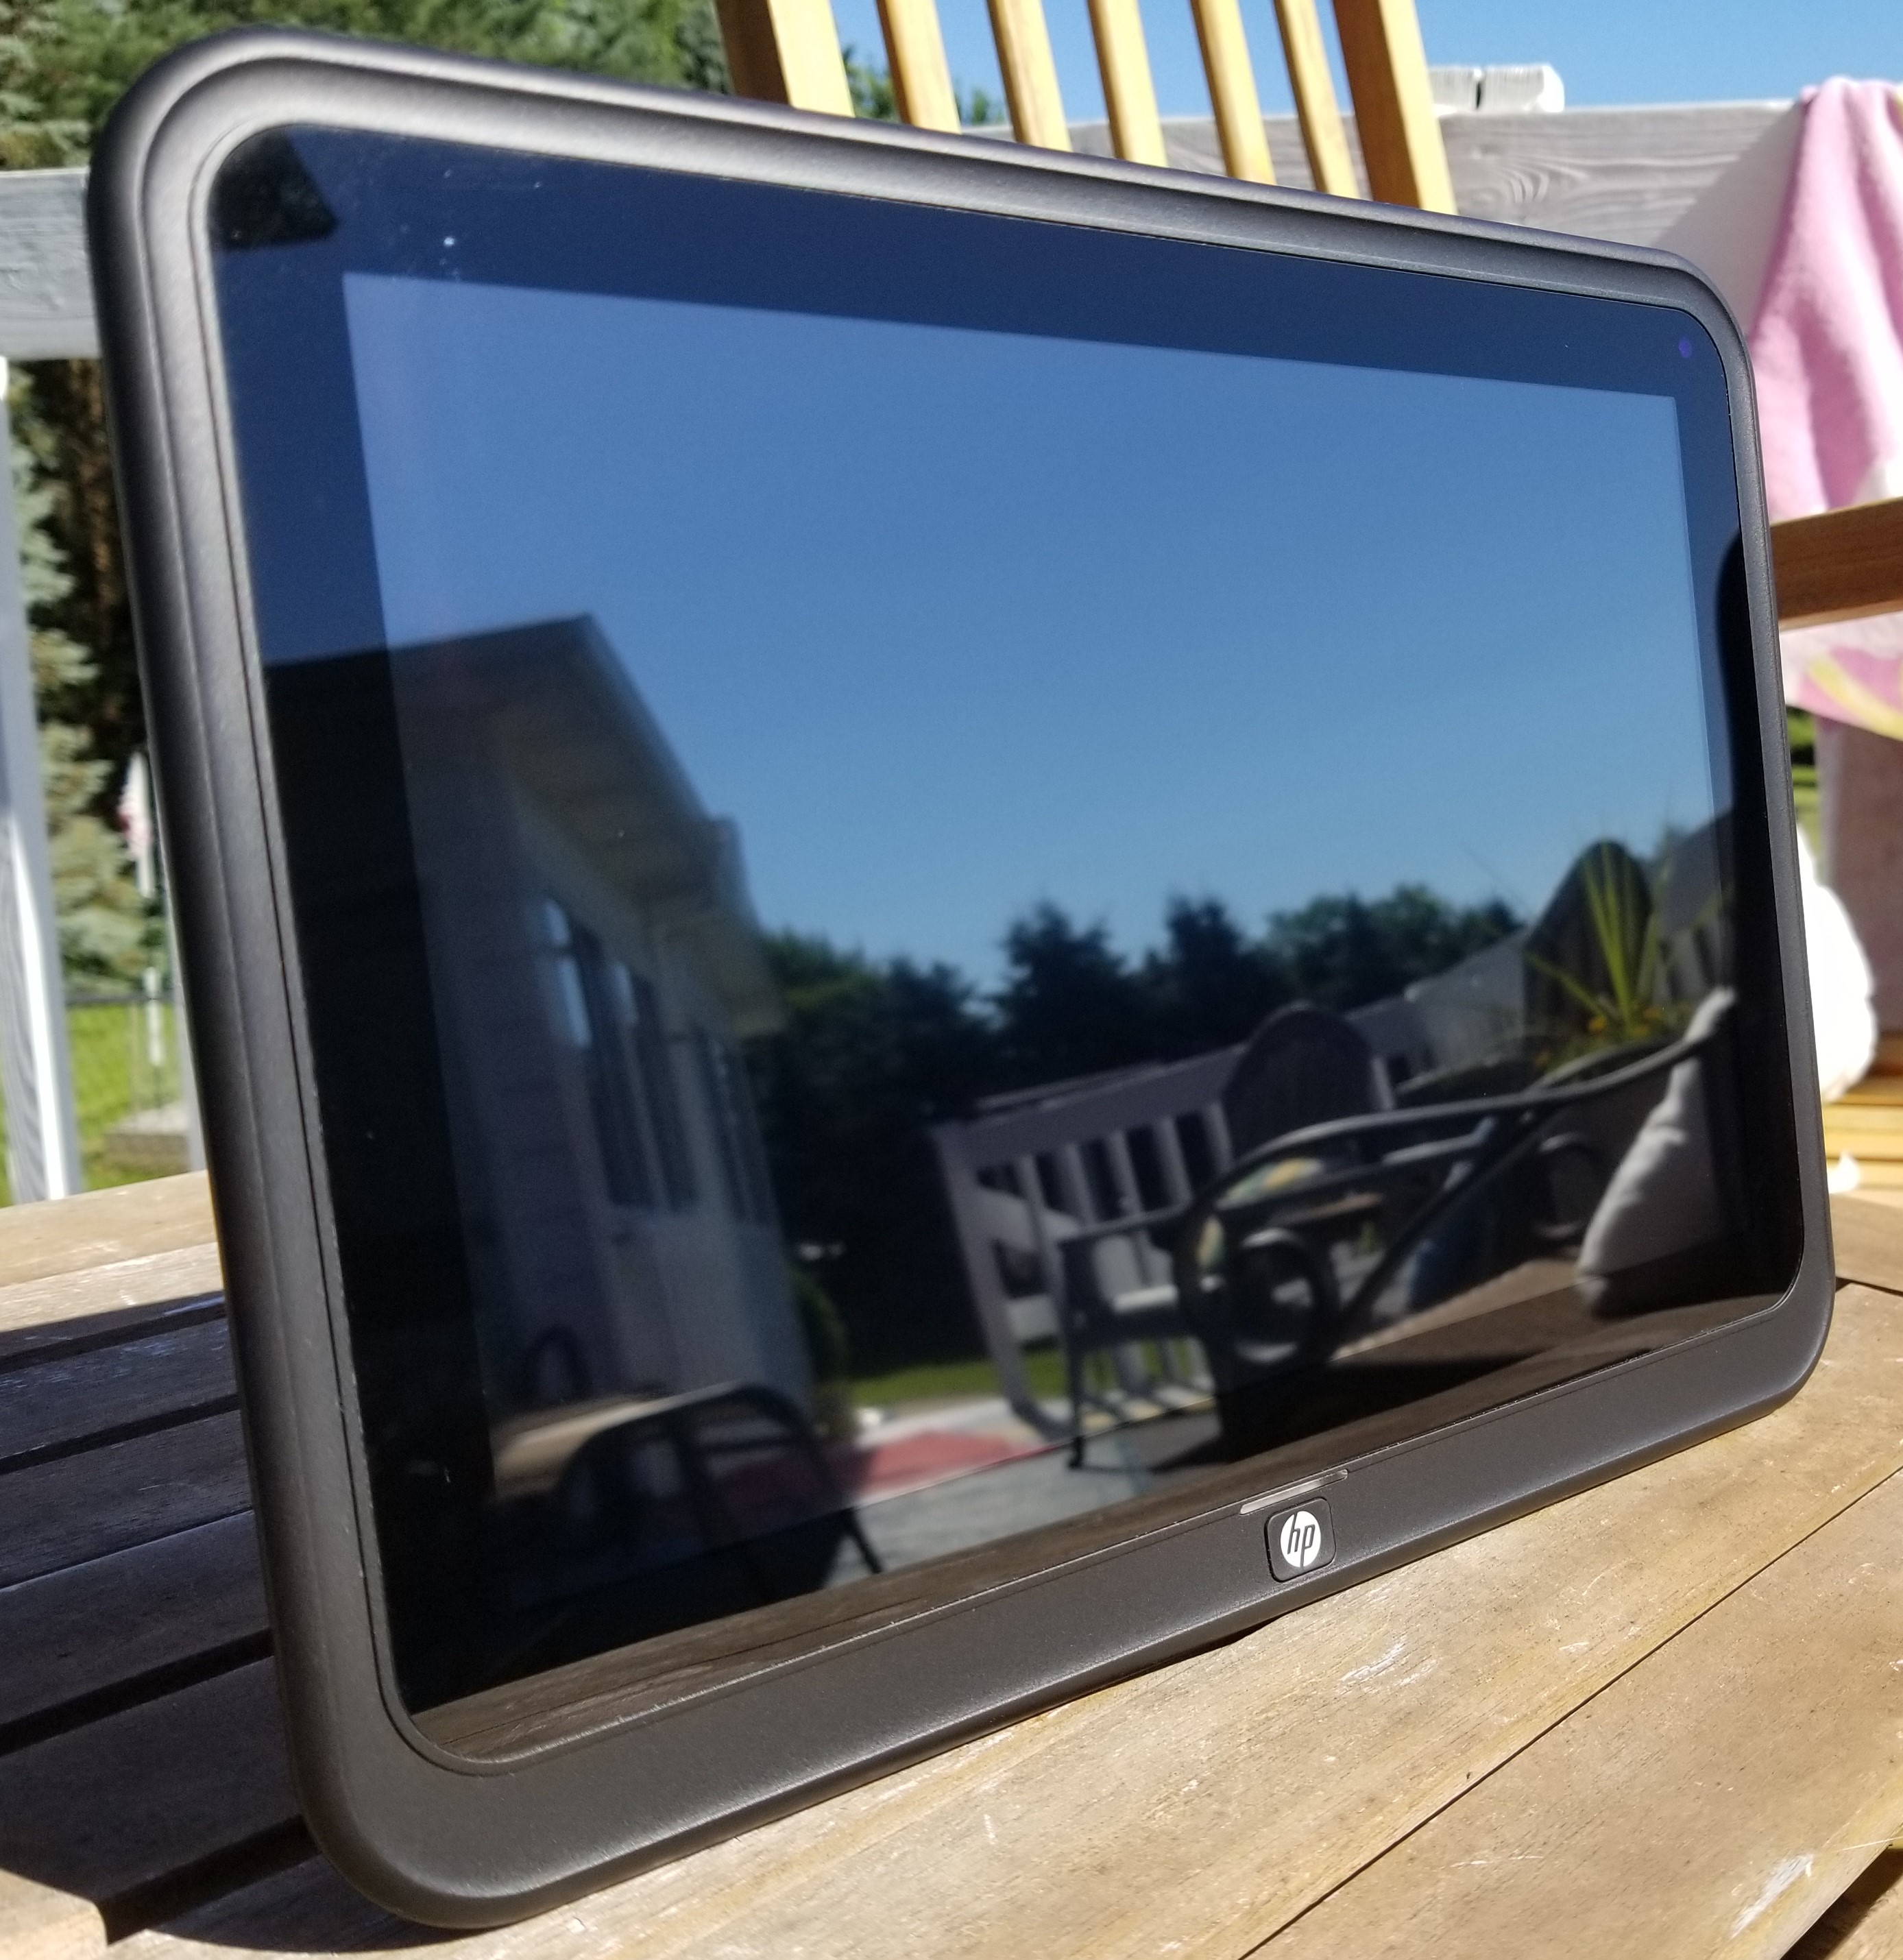 A Thousand Pictures in One – An HP Digital Photo Frame